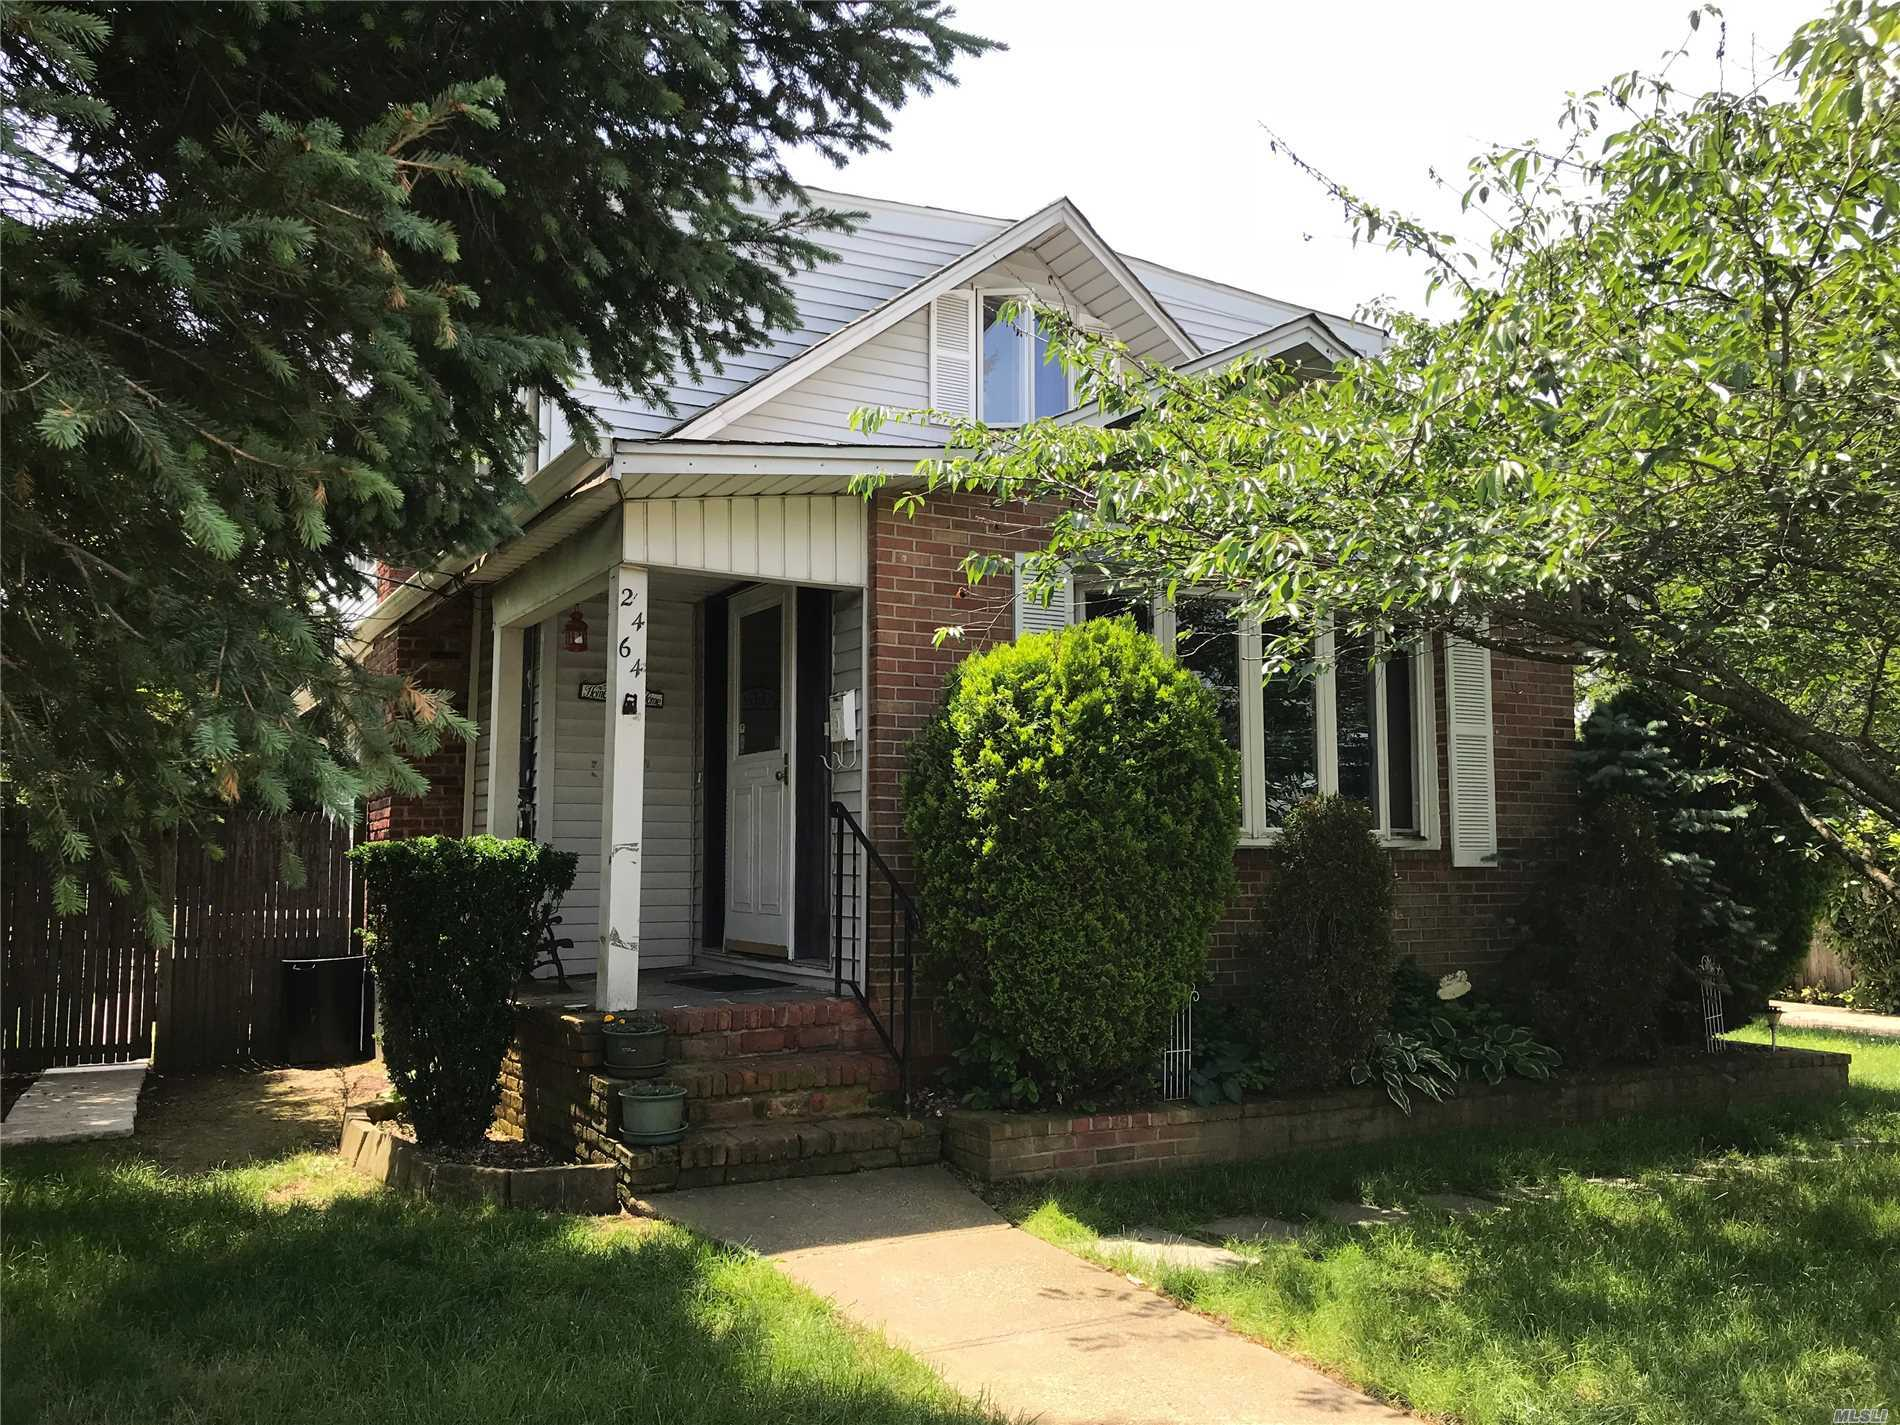 Large Expanded Cape With Detached 2 Car Garage, 4 Zone Heating (Weil Mcclain), Full Finished Basement With Den & Outside Entrance, Large Closets, Vinly & Brick Sided, Landscaped.